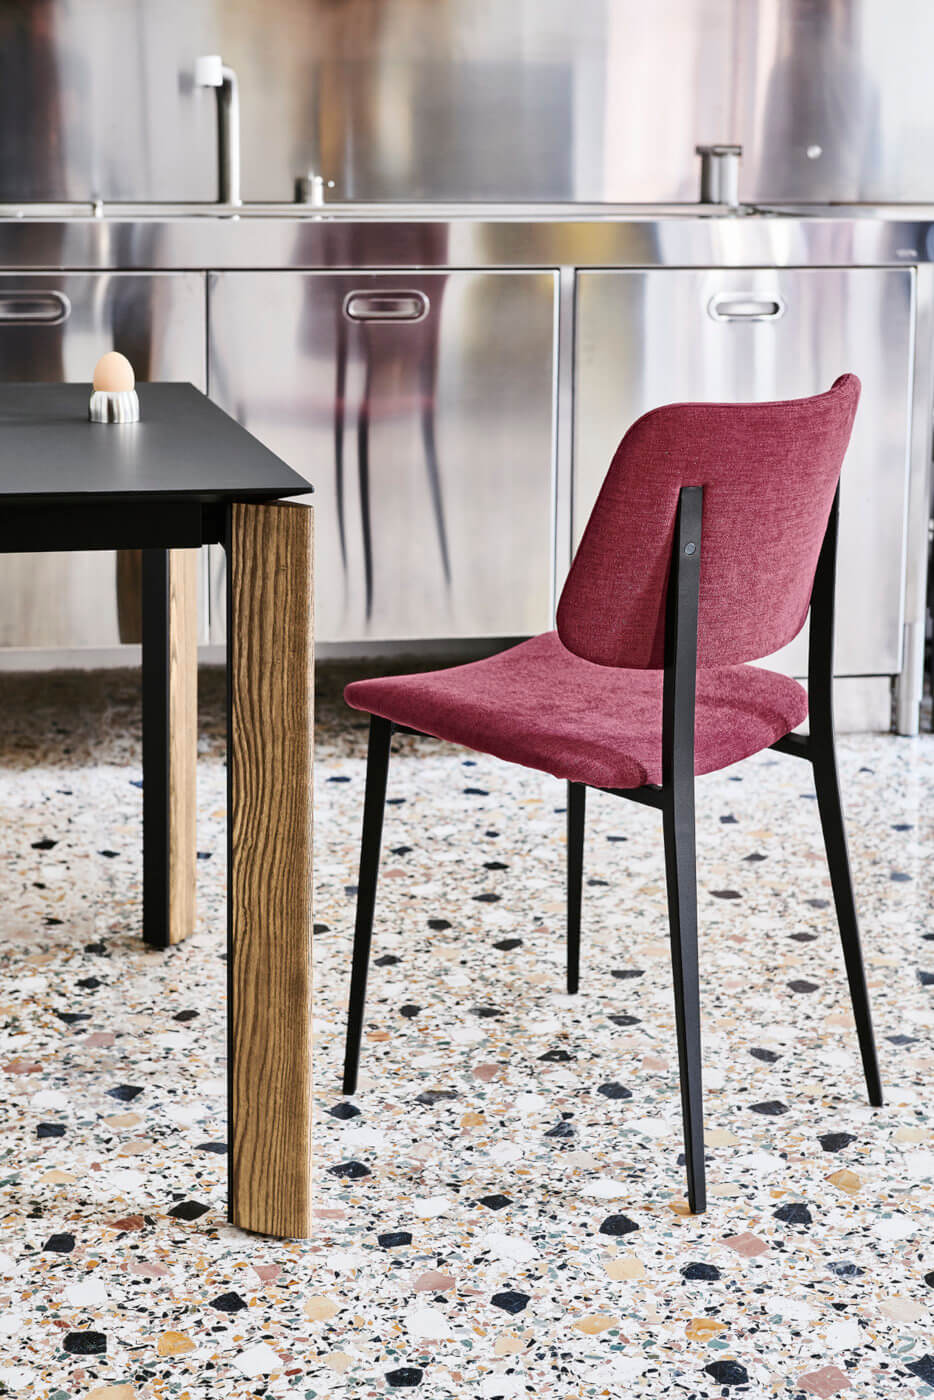 Joe chair with red fabric seat and black metal base